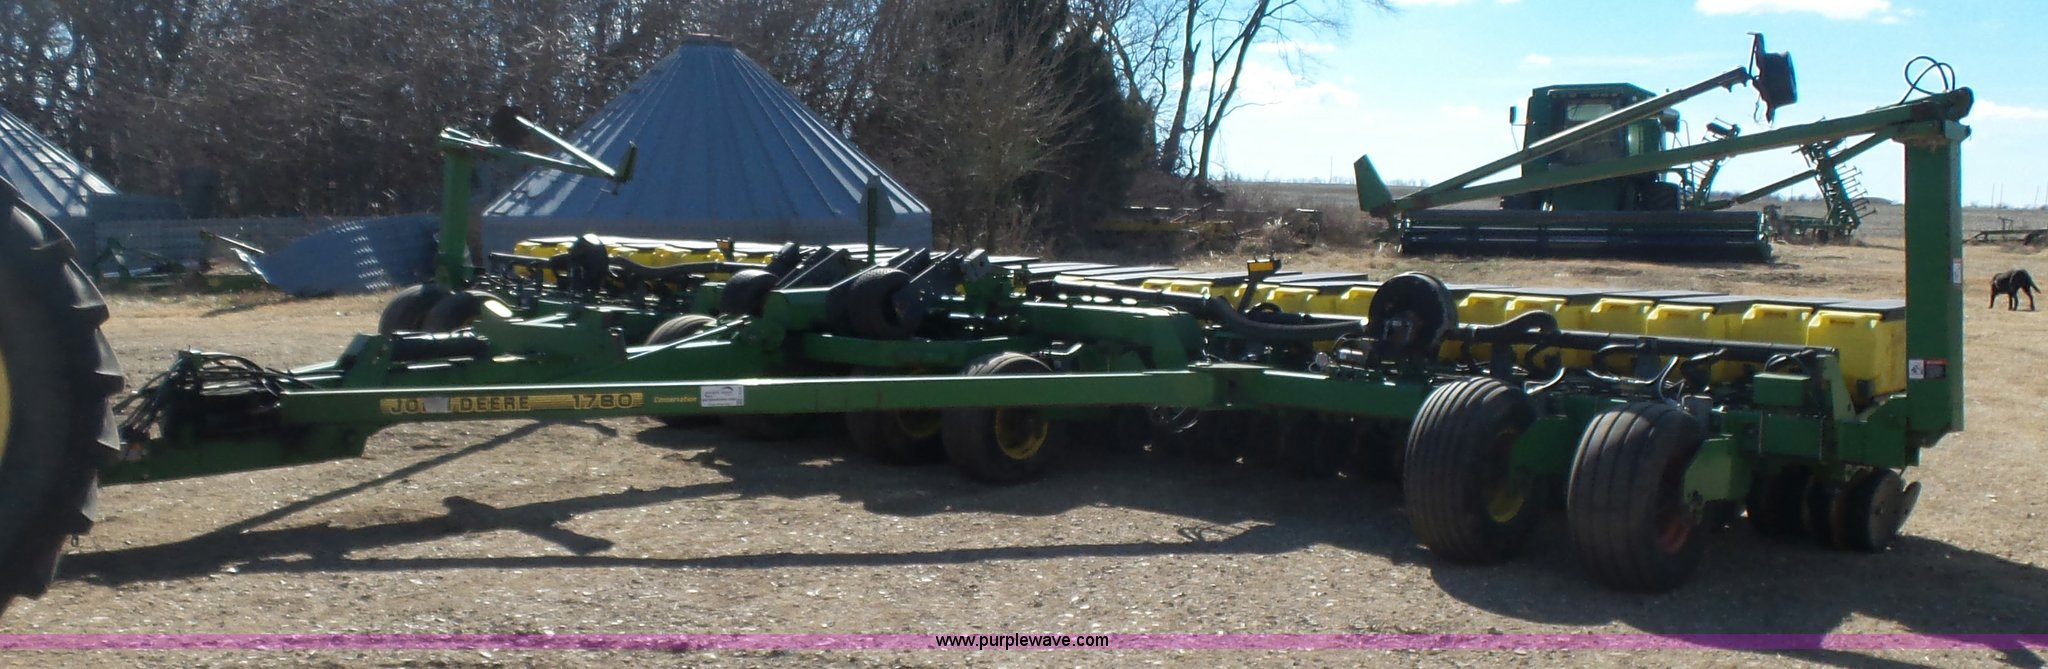 John Deere 1780 Conservation 16 31 Split Row Planter Item